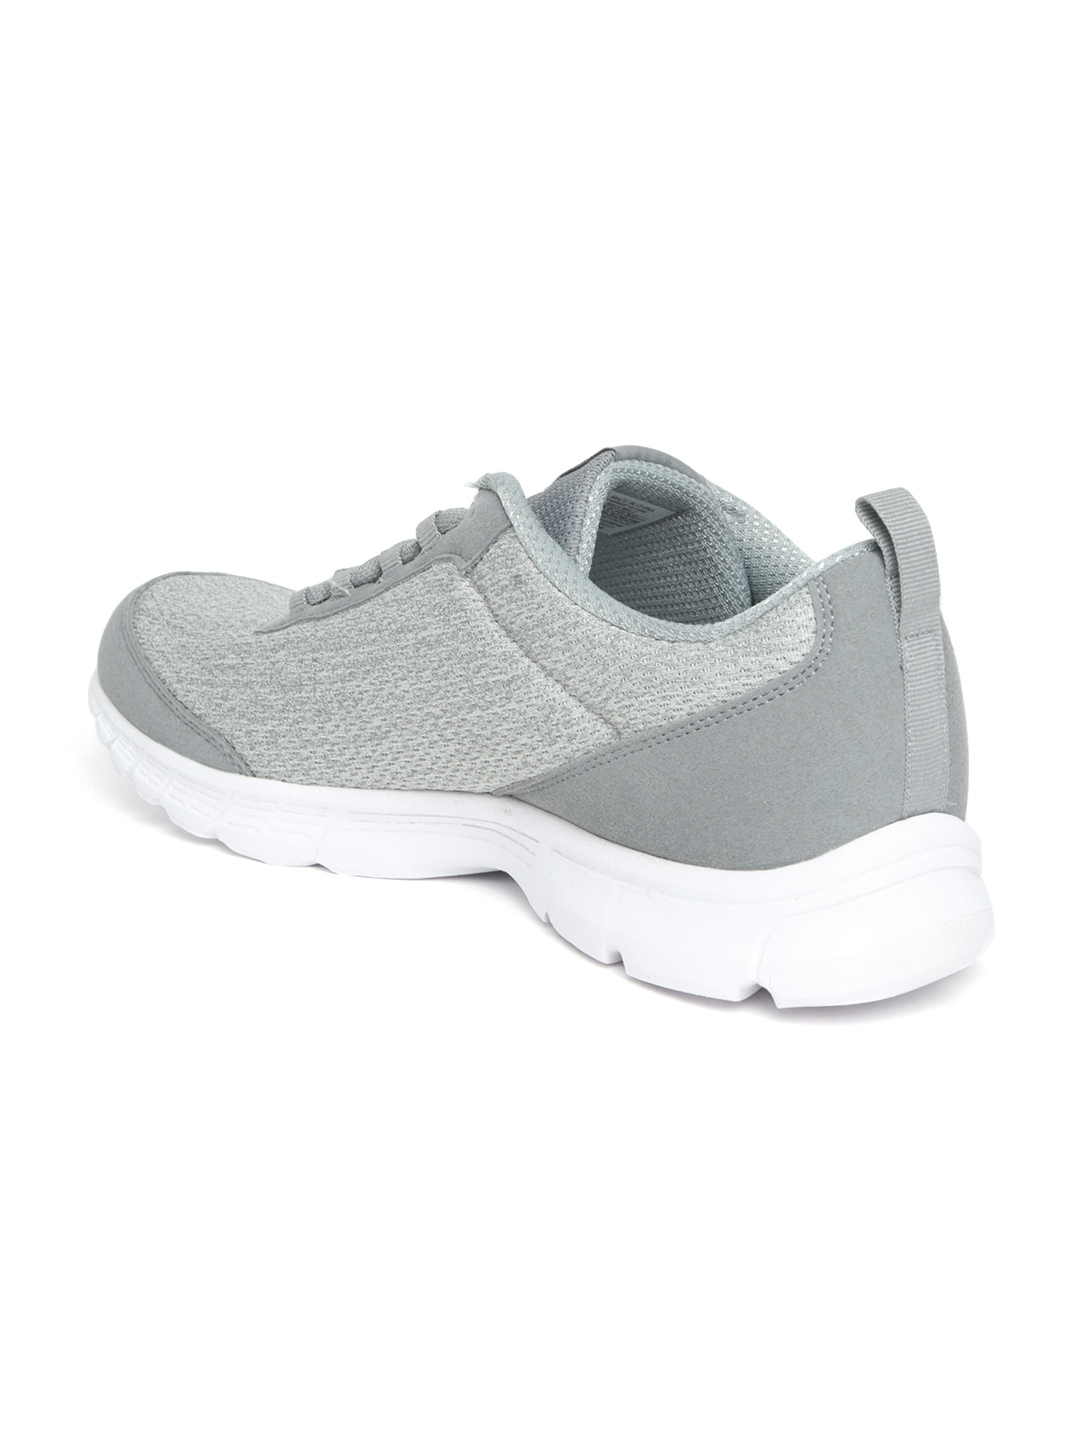 fe4eb20c6800 Buy Reebok Men Grey Speedlux 3.0 Running Shoes - Sports Shoes for ...